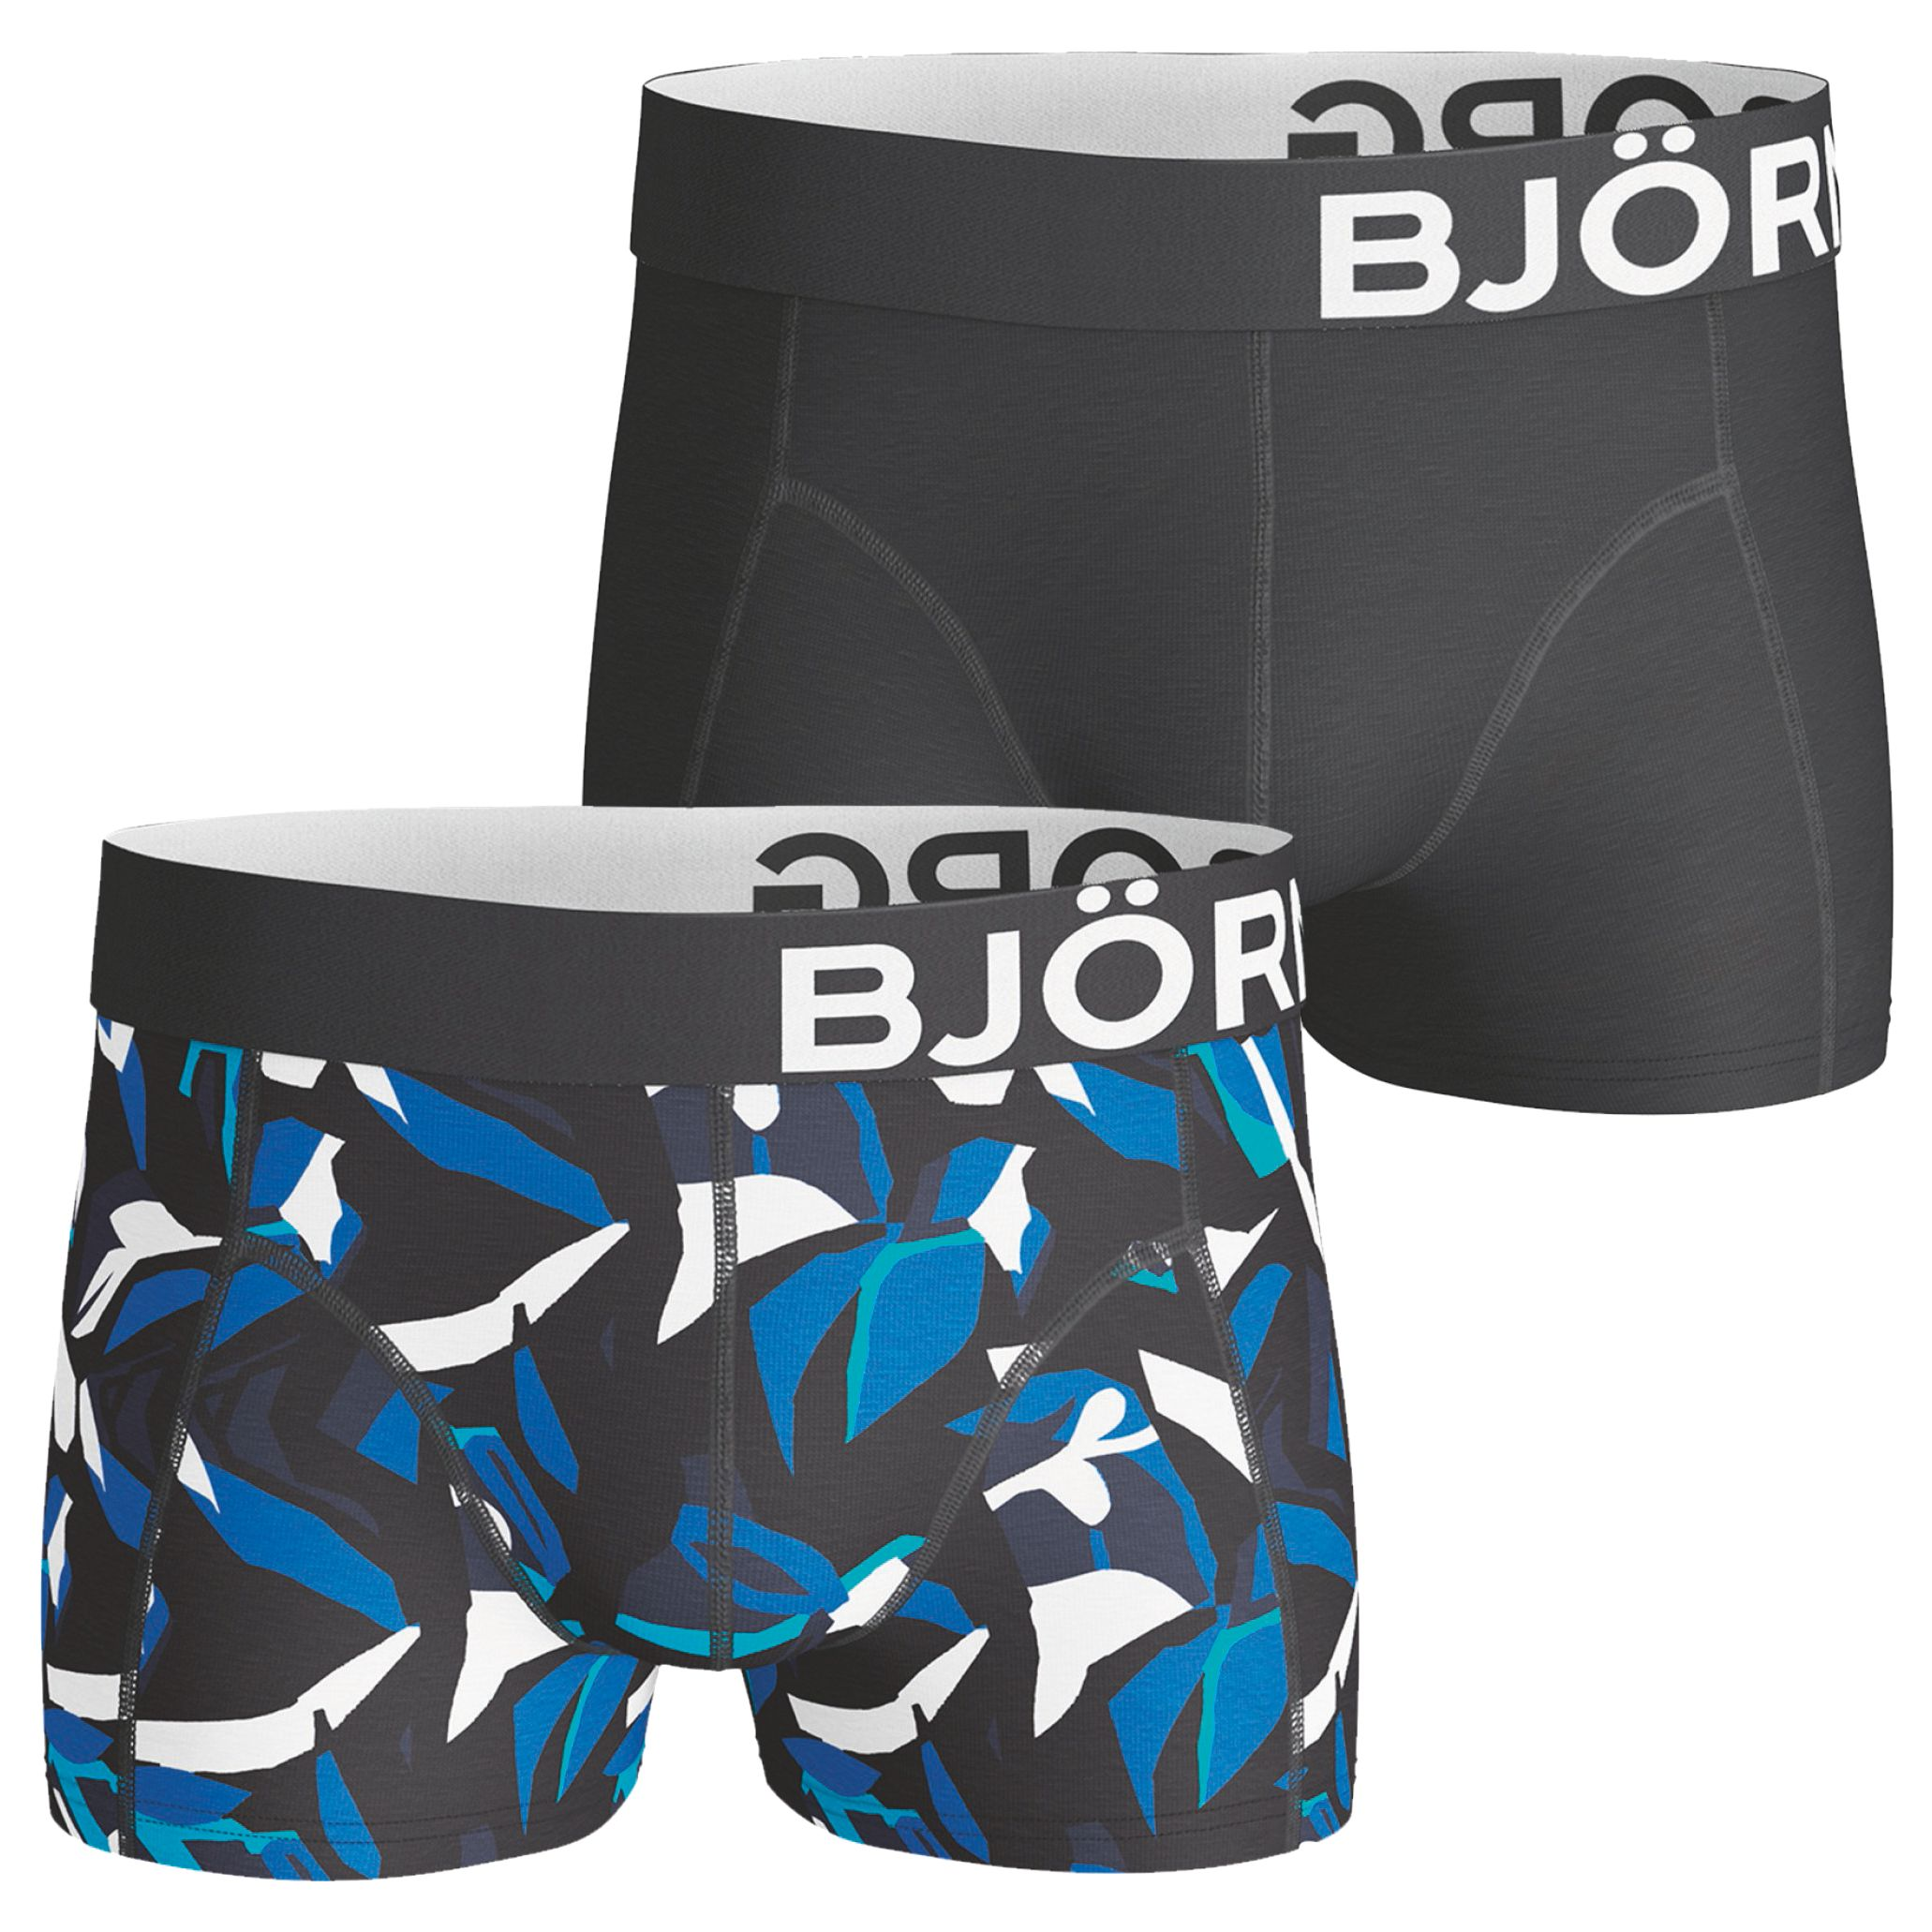 Bjorn Borg Bjorn Borg Graphic Print Short Trunks, Pack of 2, Black